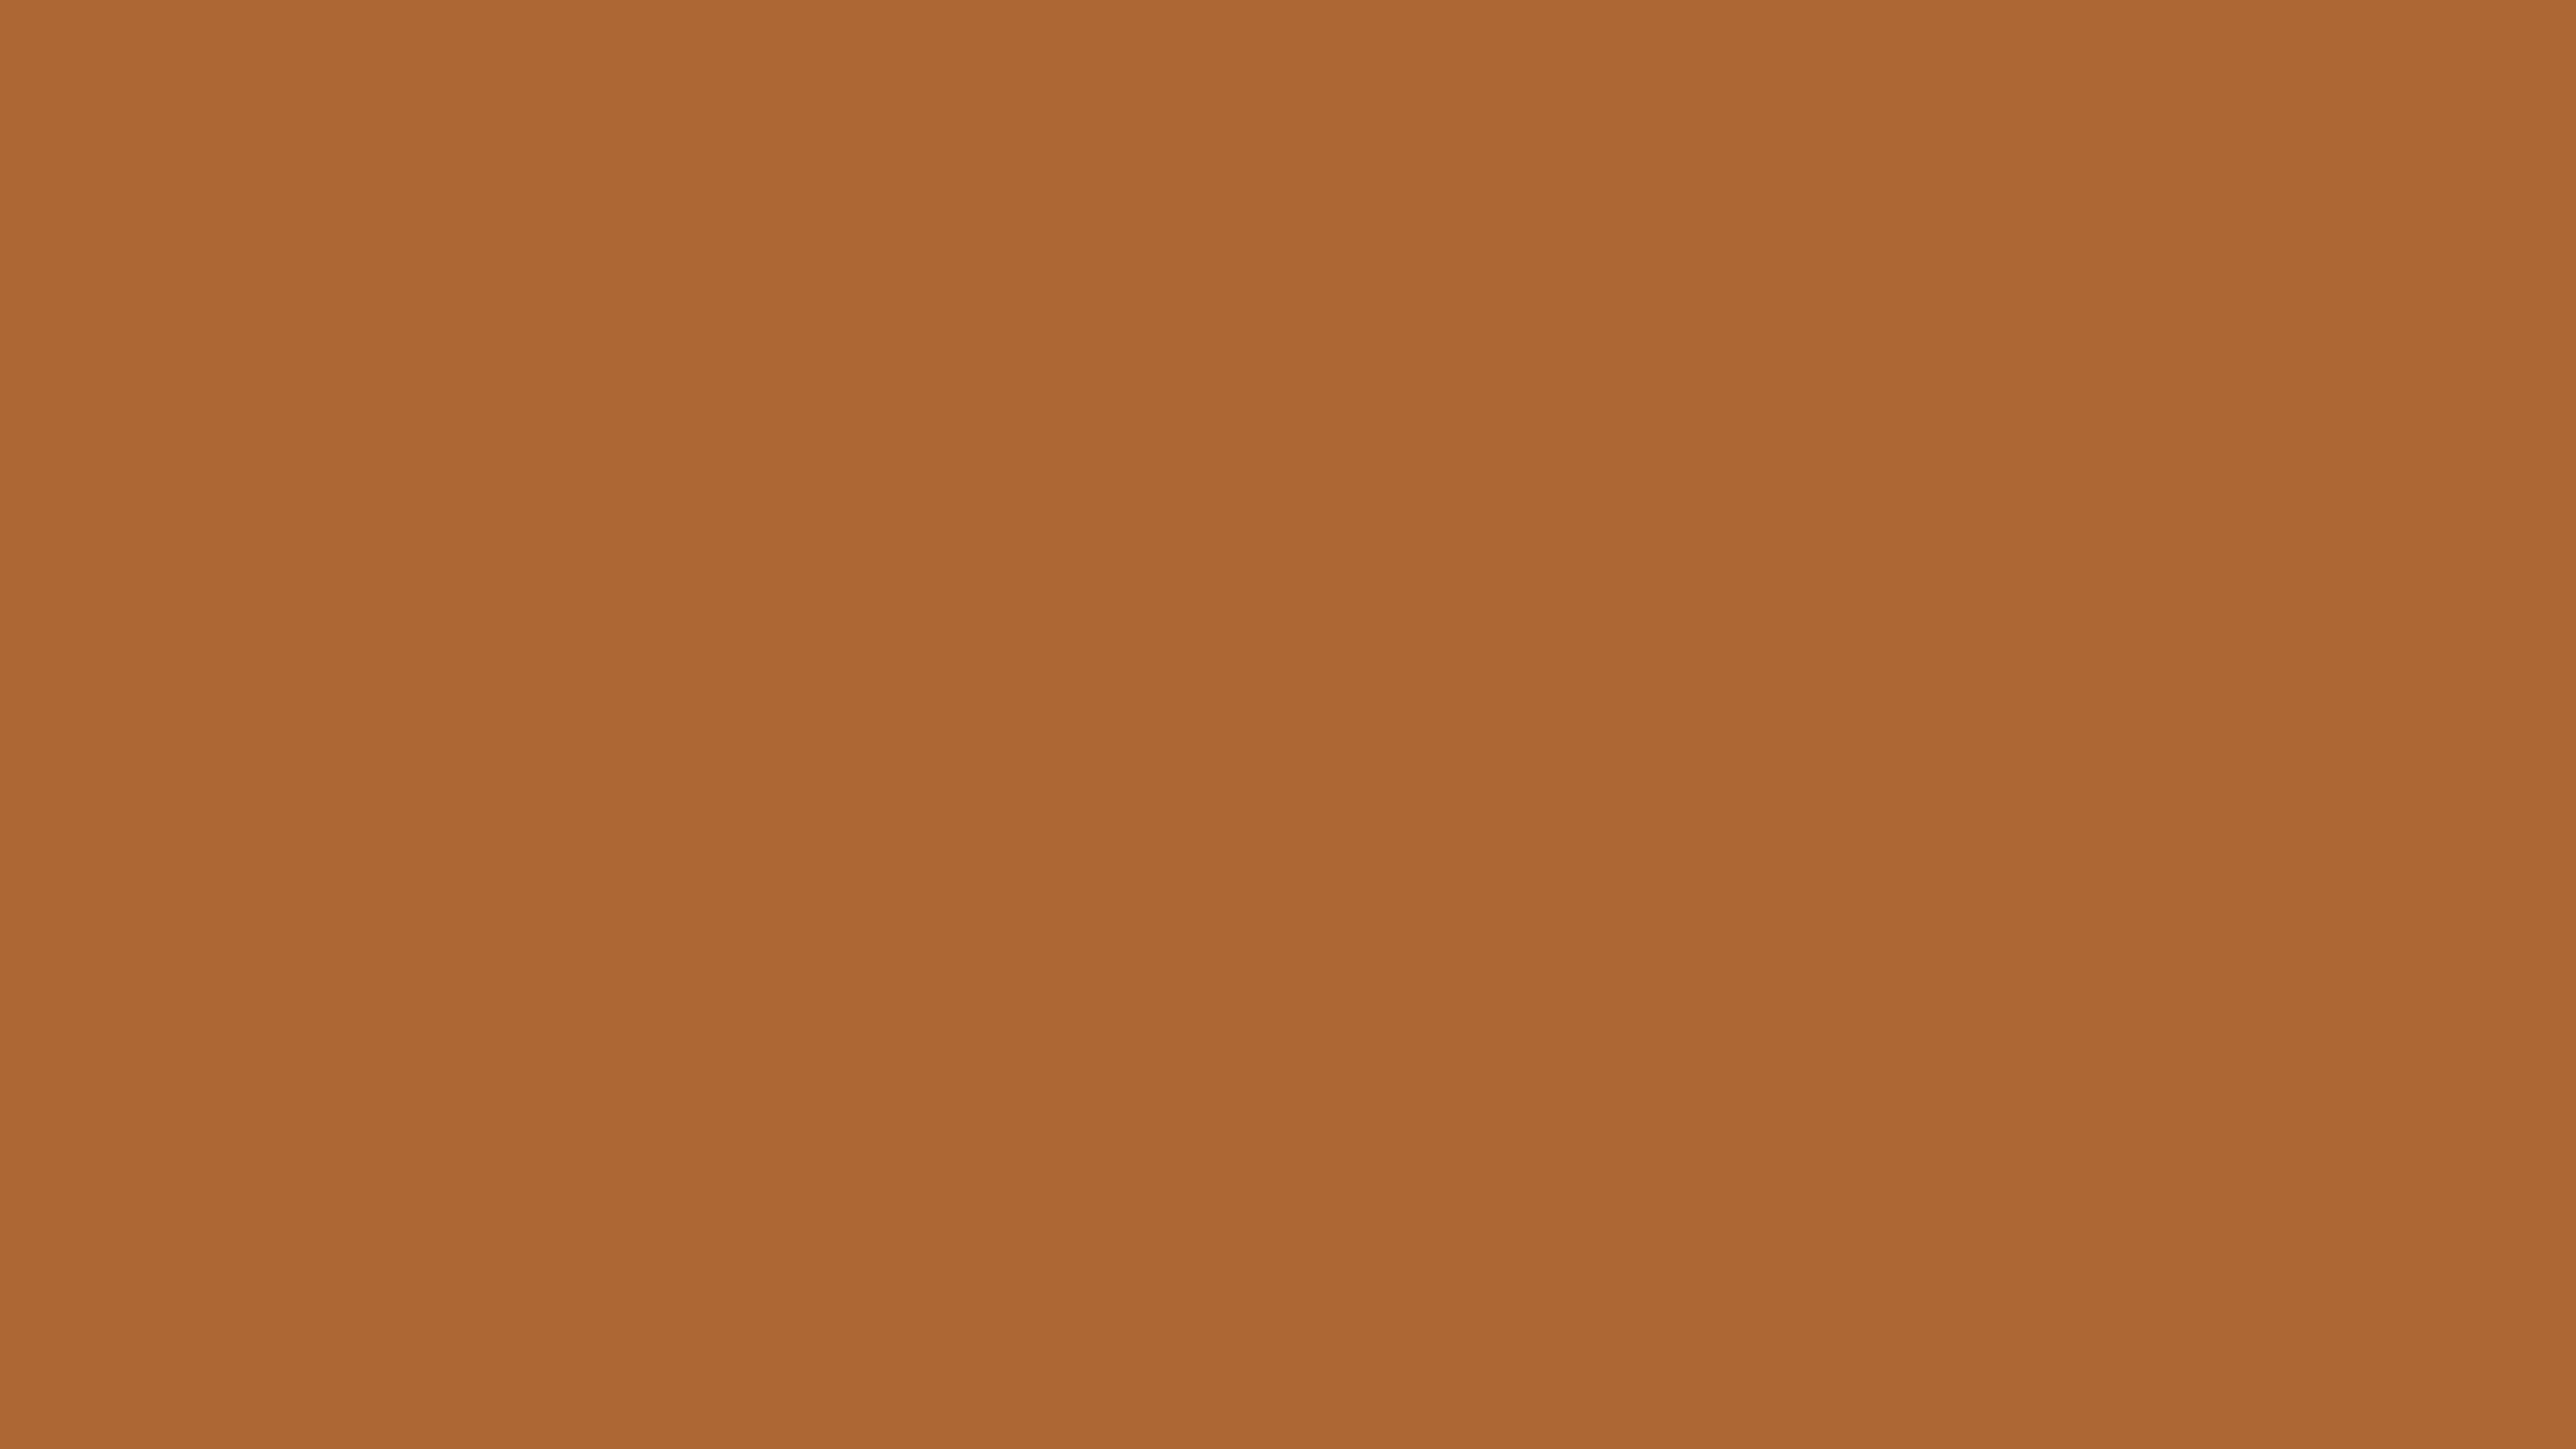 3840x2160 Windsor Tan Solid Color Background